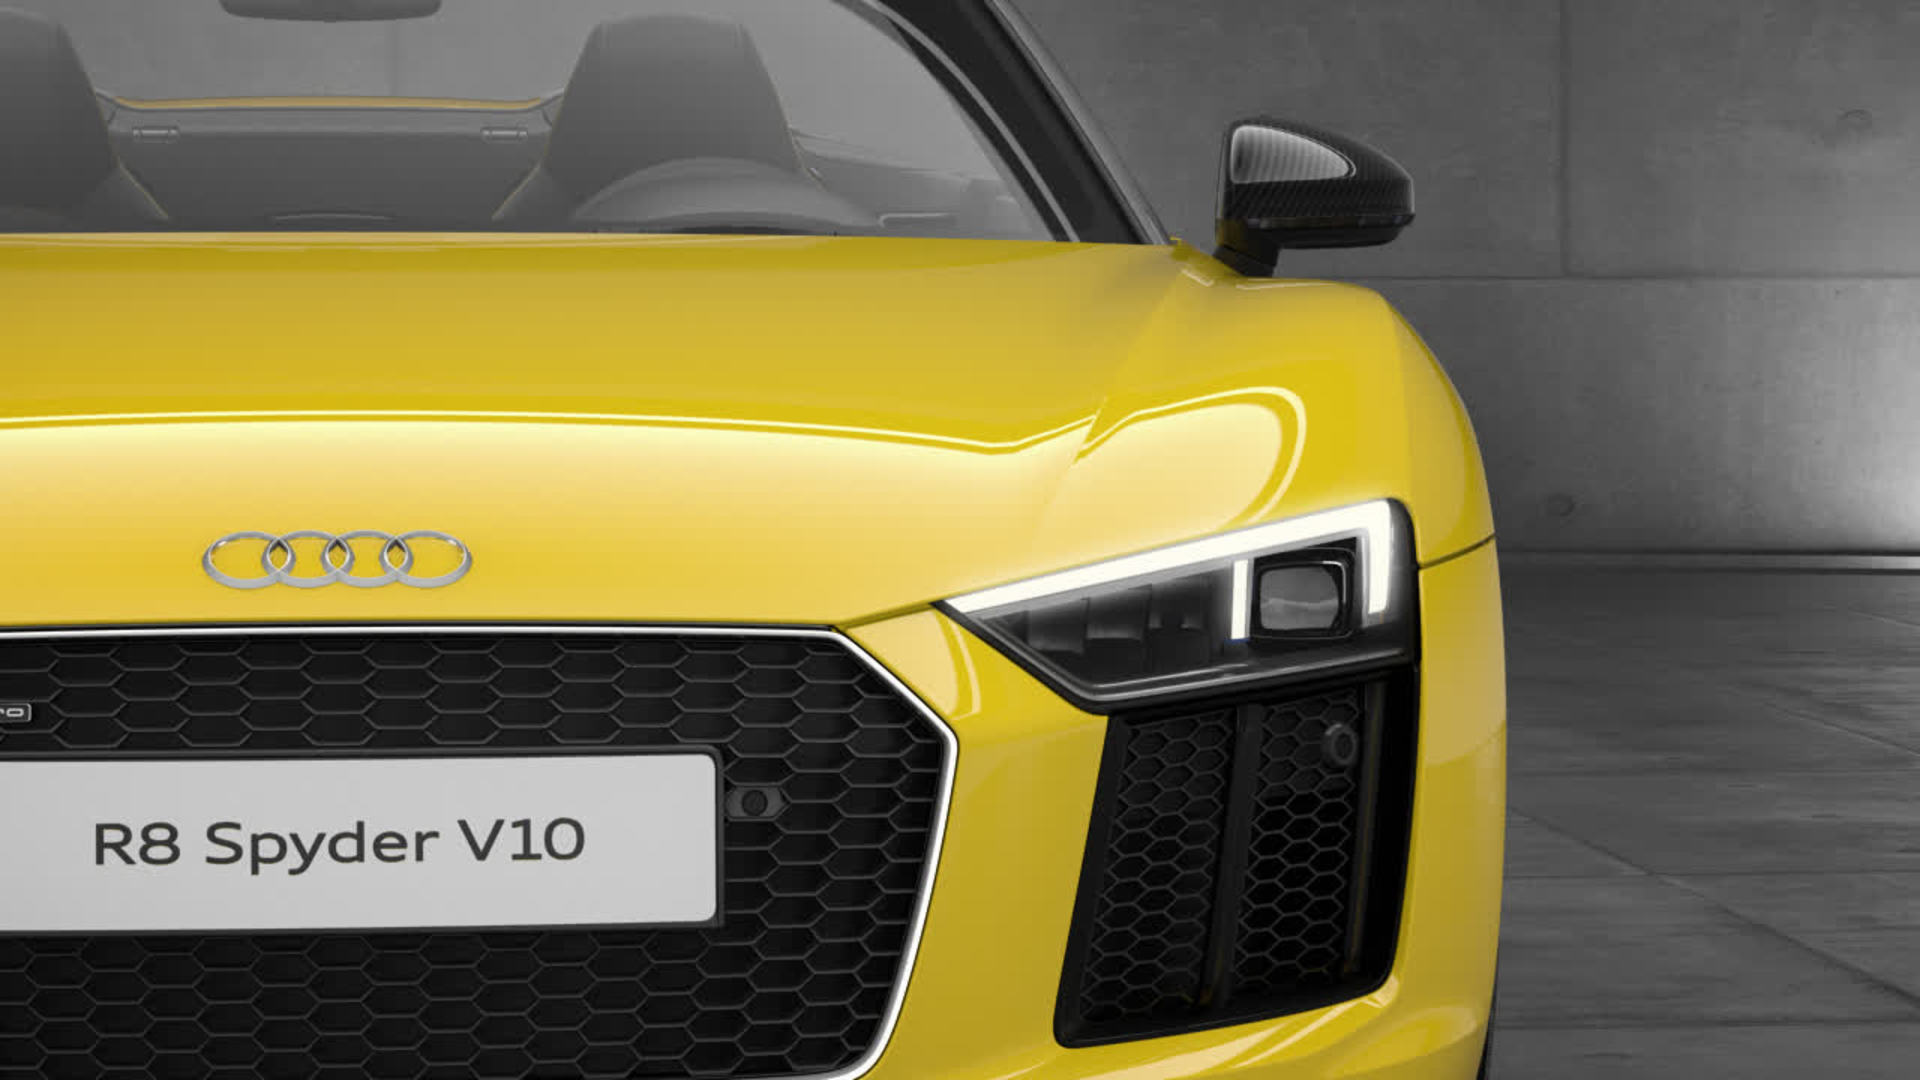 Audi R8 Spyder V10 LED headlight Animation